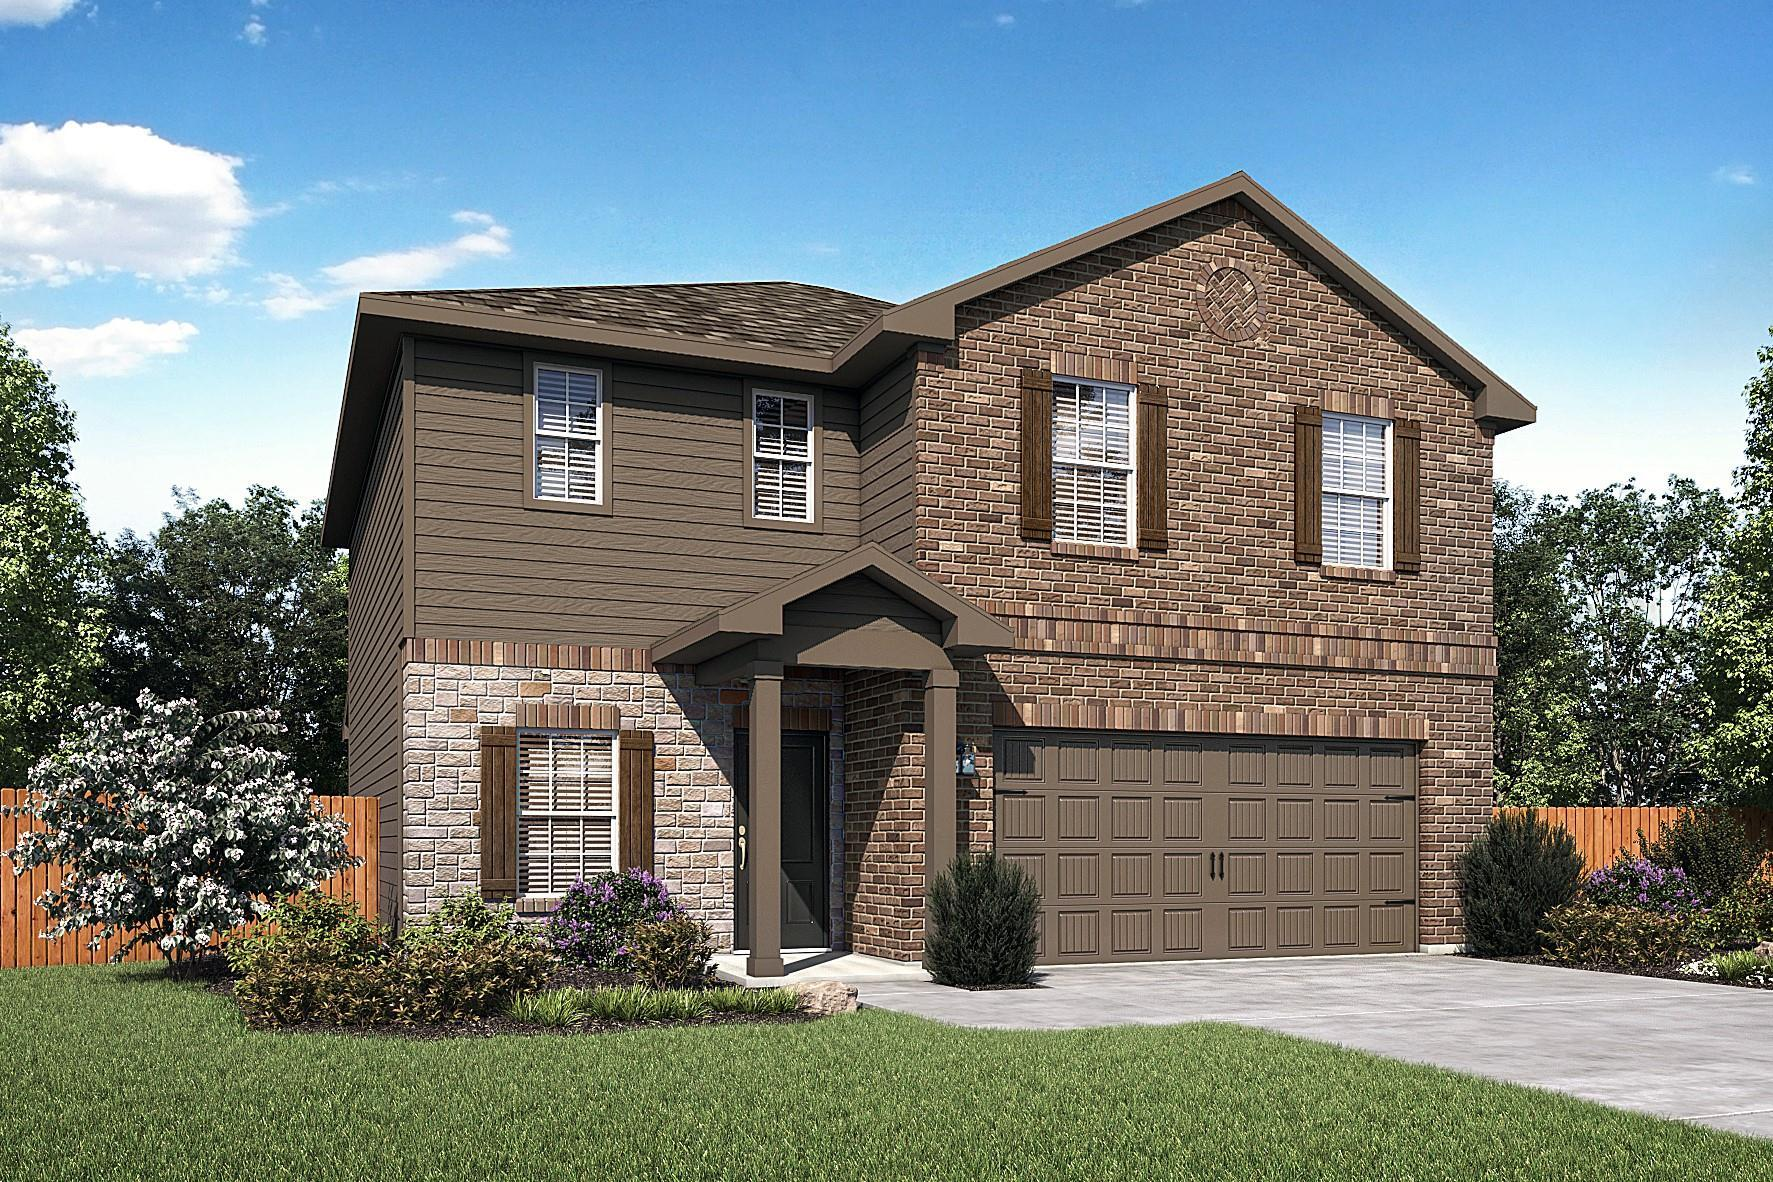 The Shelby Plan by LGI Homes:The stunning Shelby plan is now available at Talise de Culebra